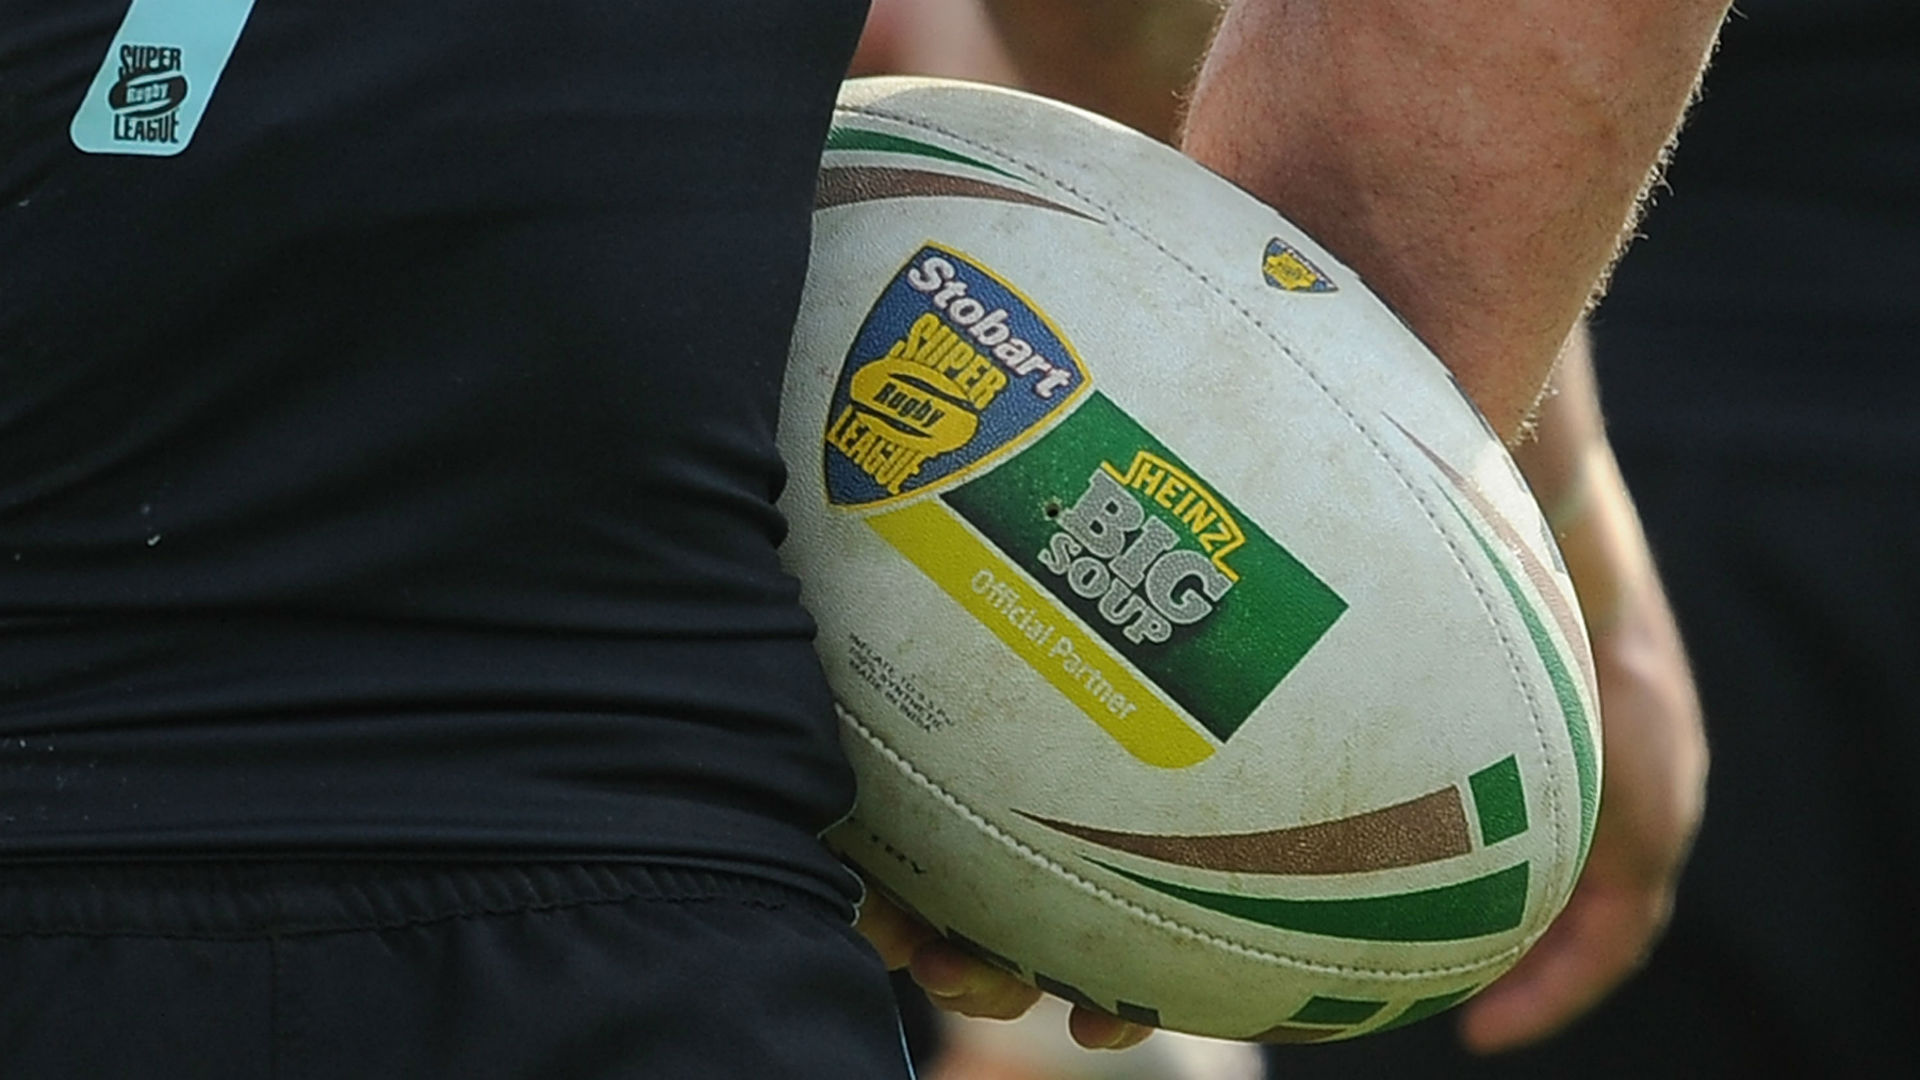 An application for a New York team was presented to the Rugby Football League at a recent board meeting.